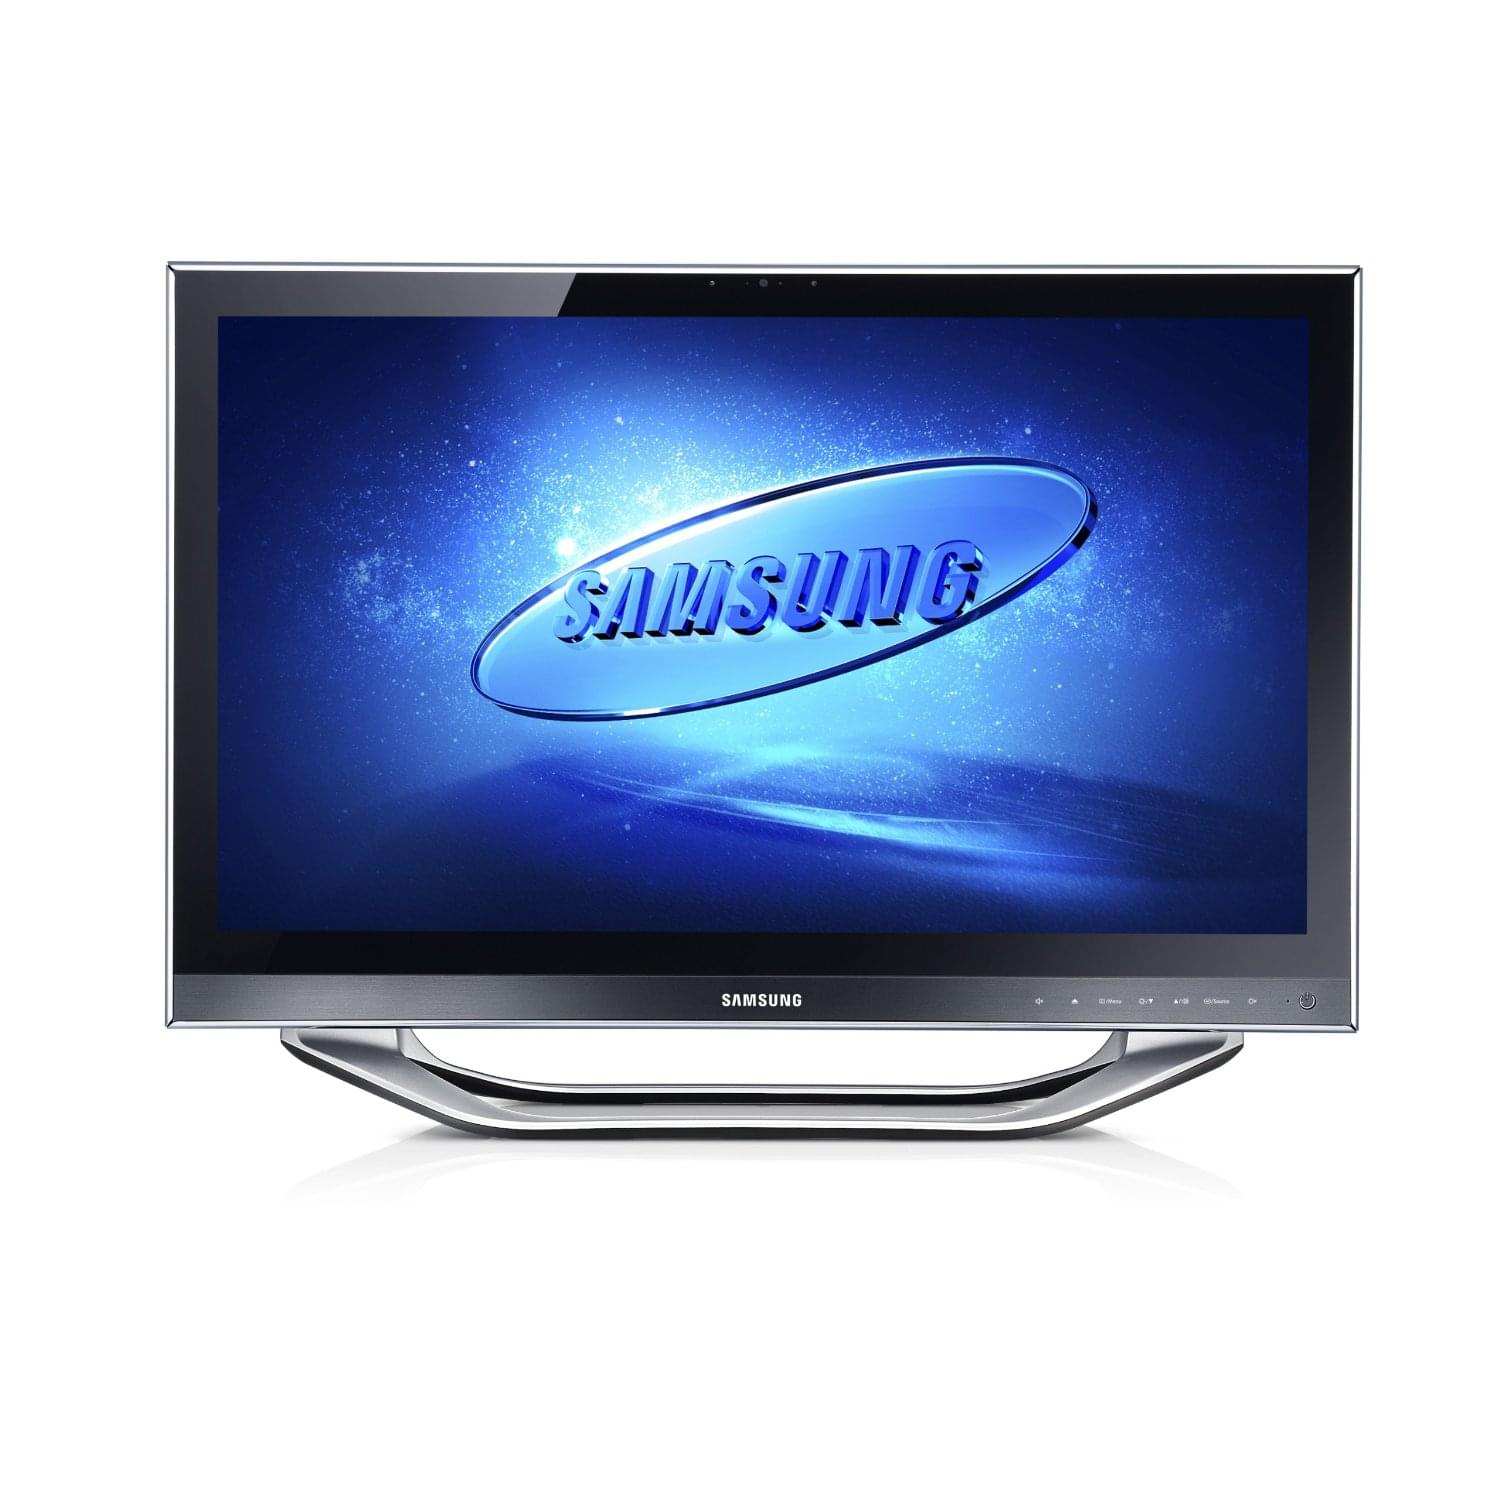 Samsung DP700A7D-S01FR (DP700A7D-S01FR) - Achat / Vente All-In-One PC sur Cybertek.fr - 0